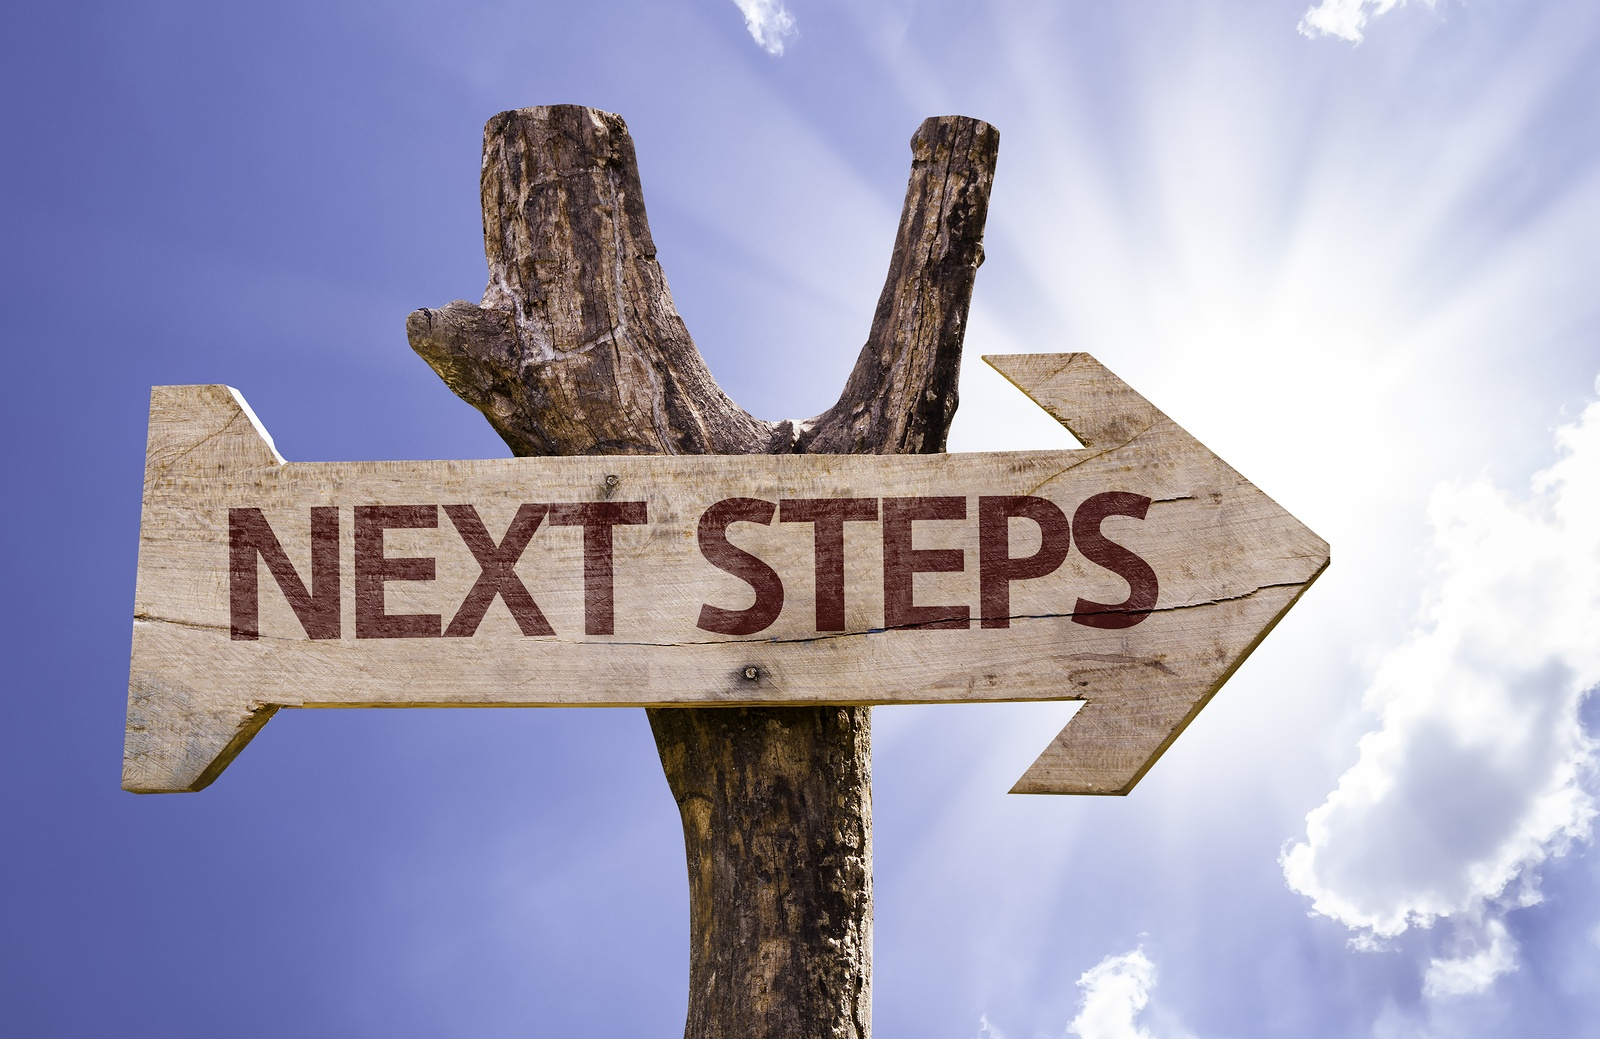 bigstock-Next-Steps-wooden-sign-on-a-be-756144821.jpg